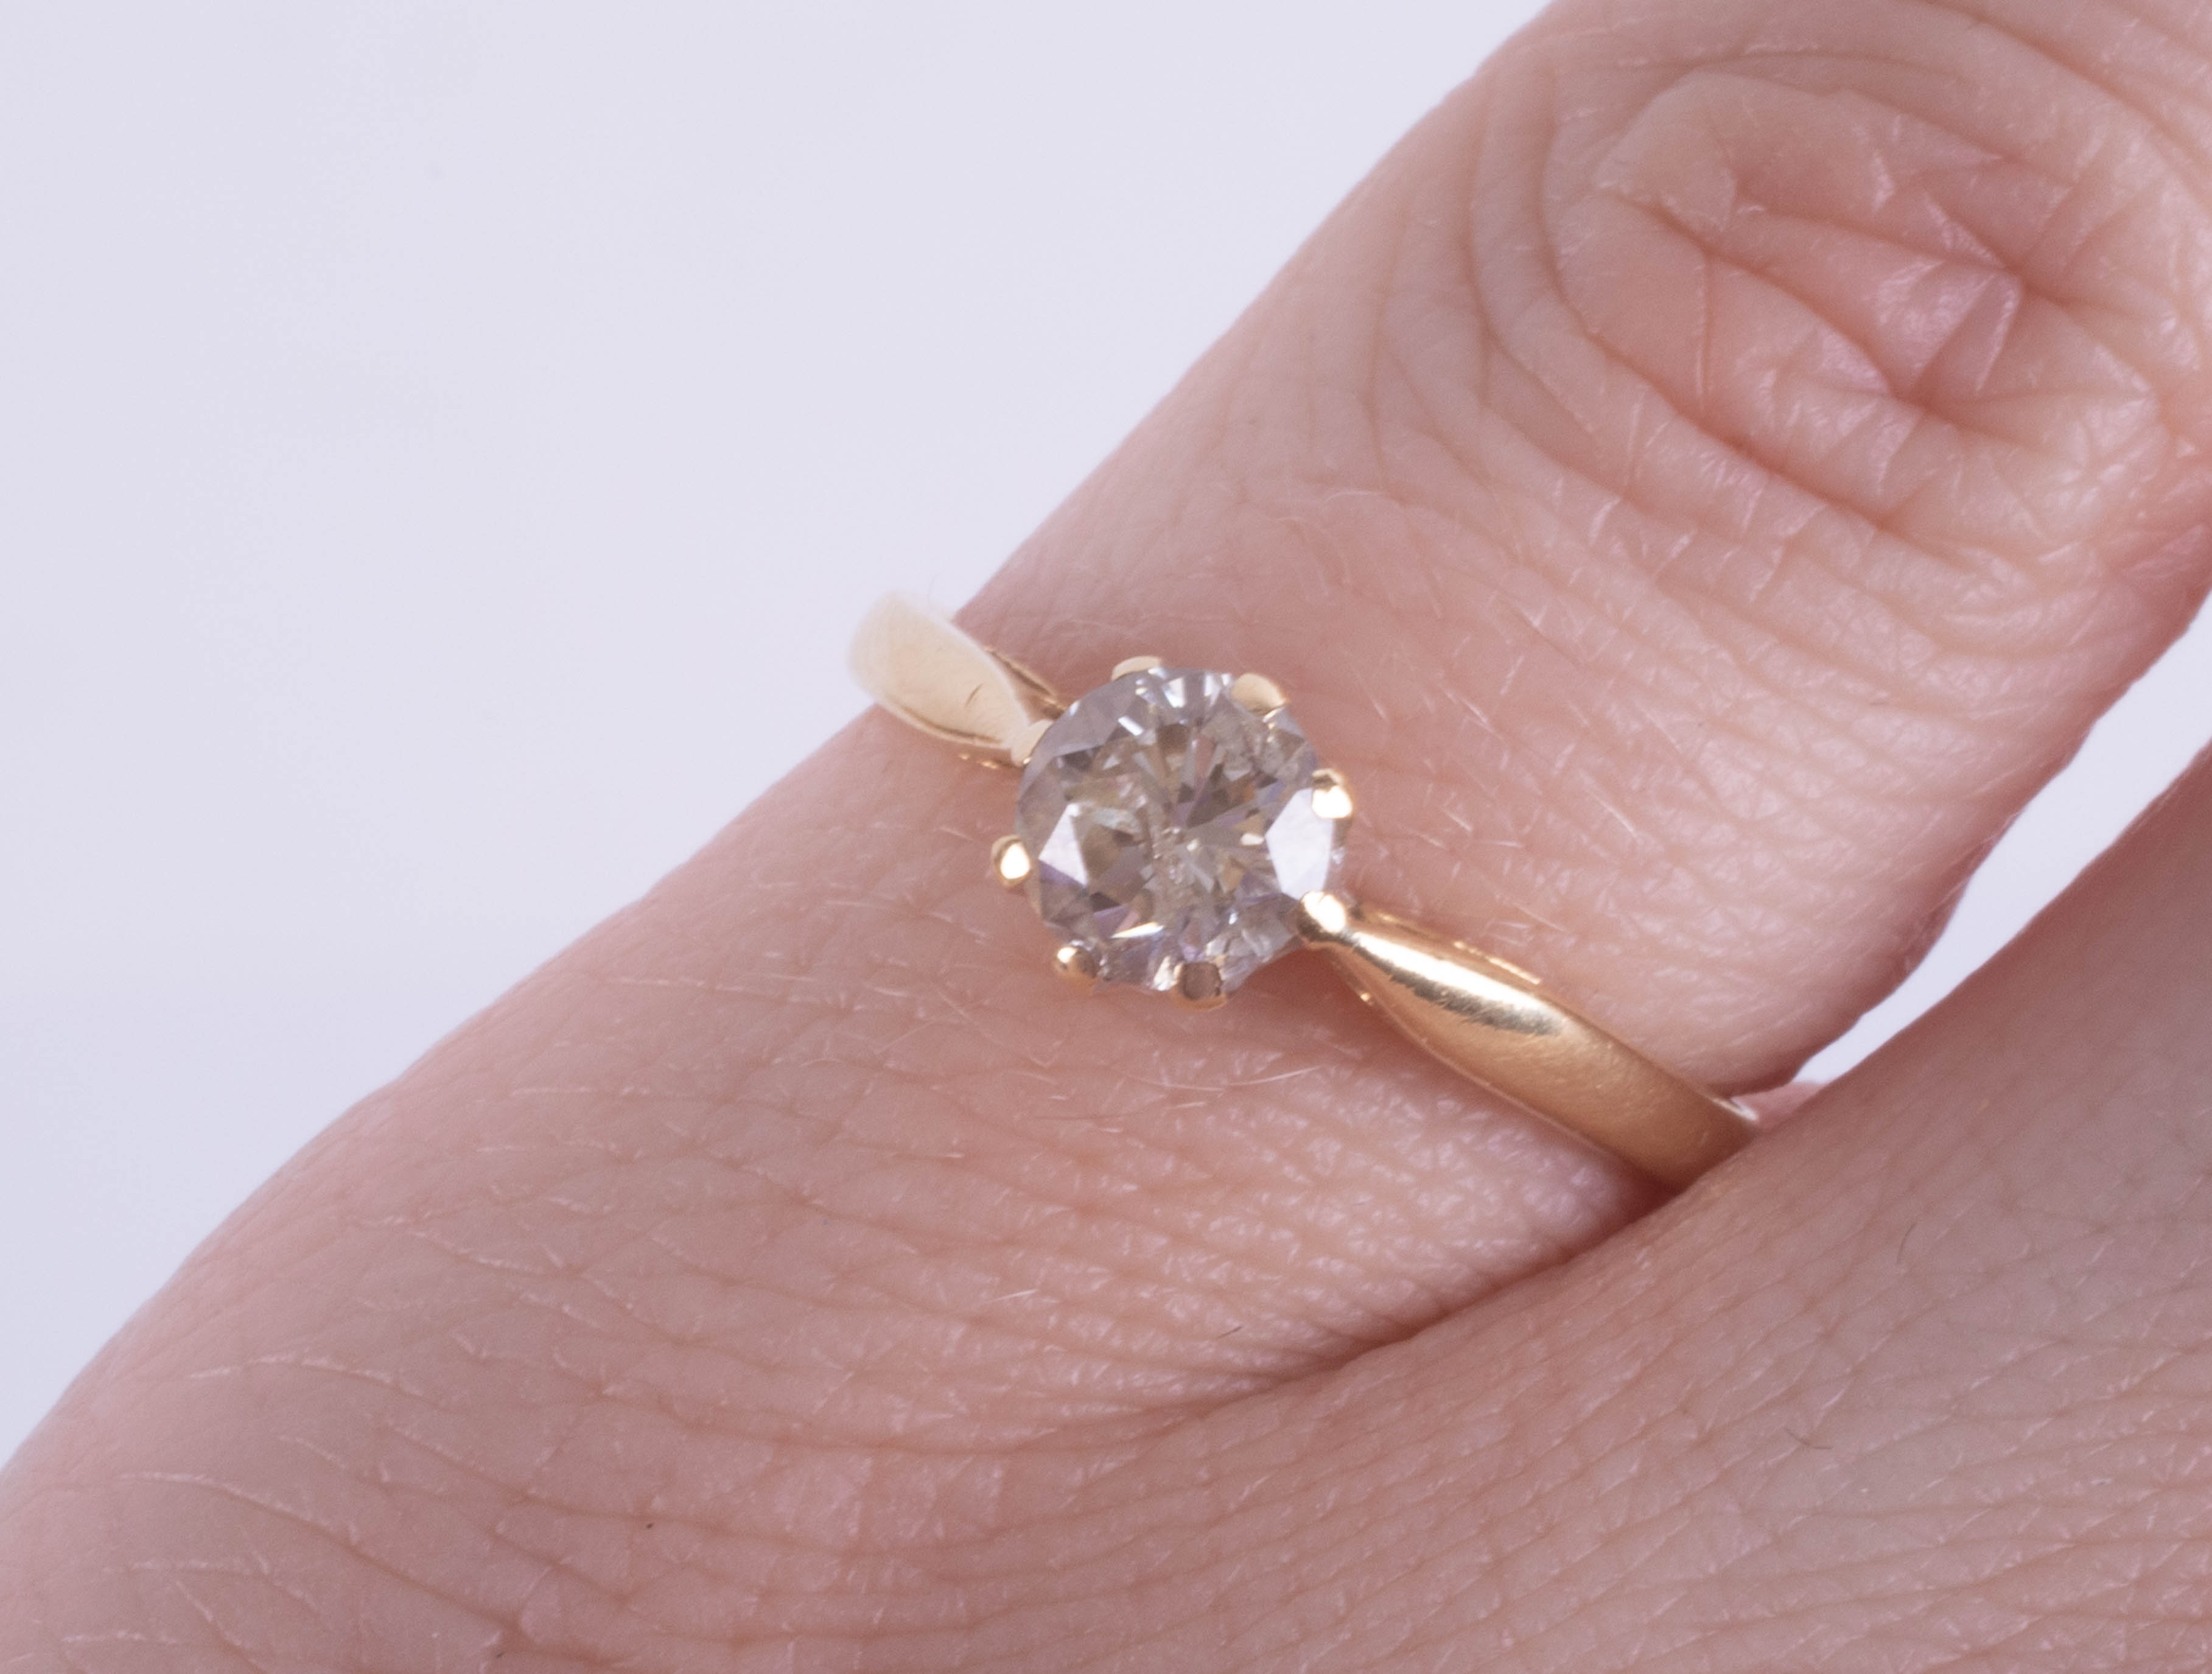 An 18ct yellow gold diamond solitaire ring approx. 0.50ct, ring size J. - Image 2 of 2